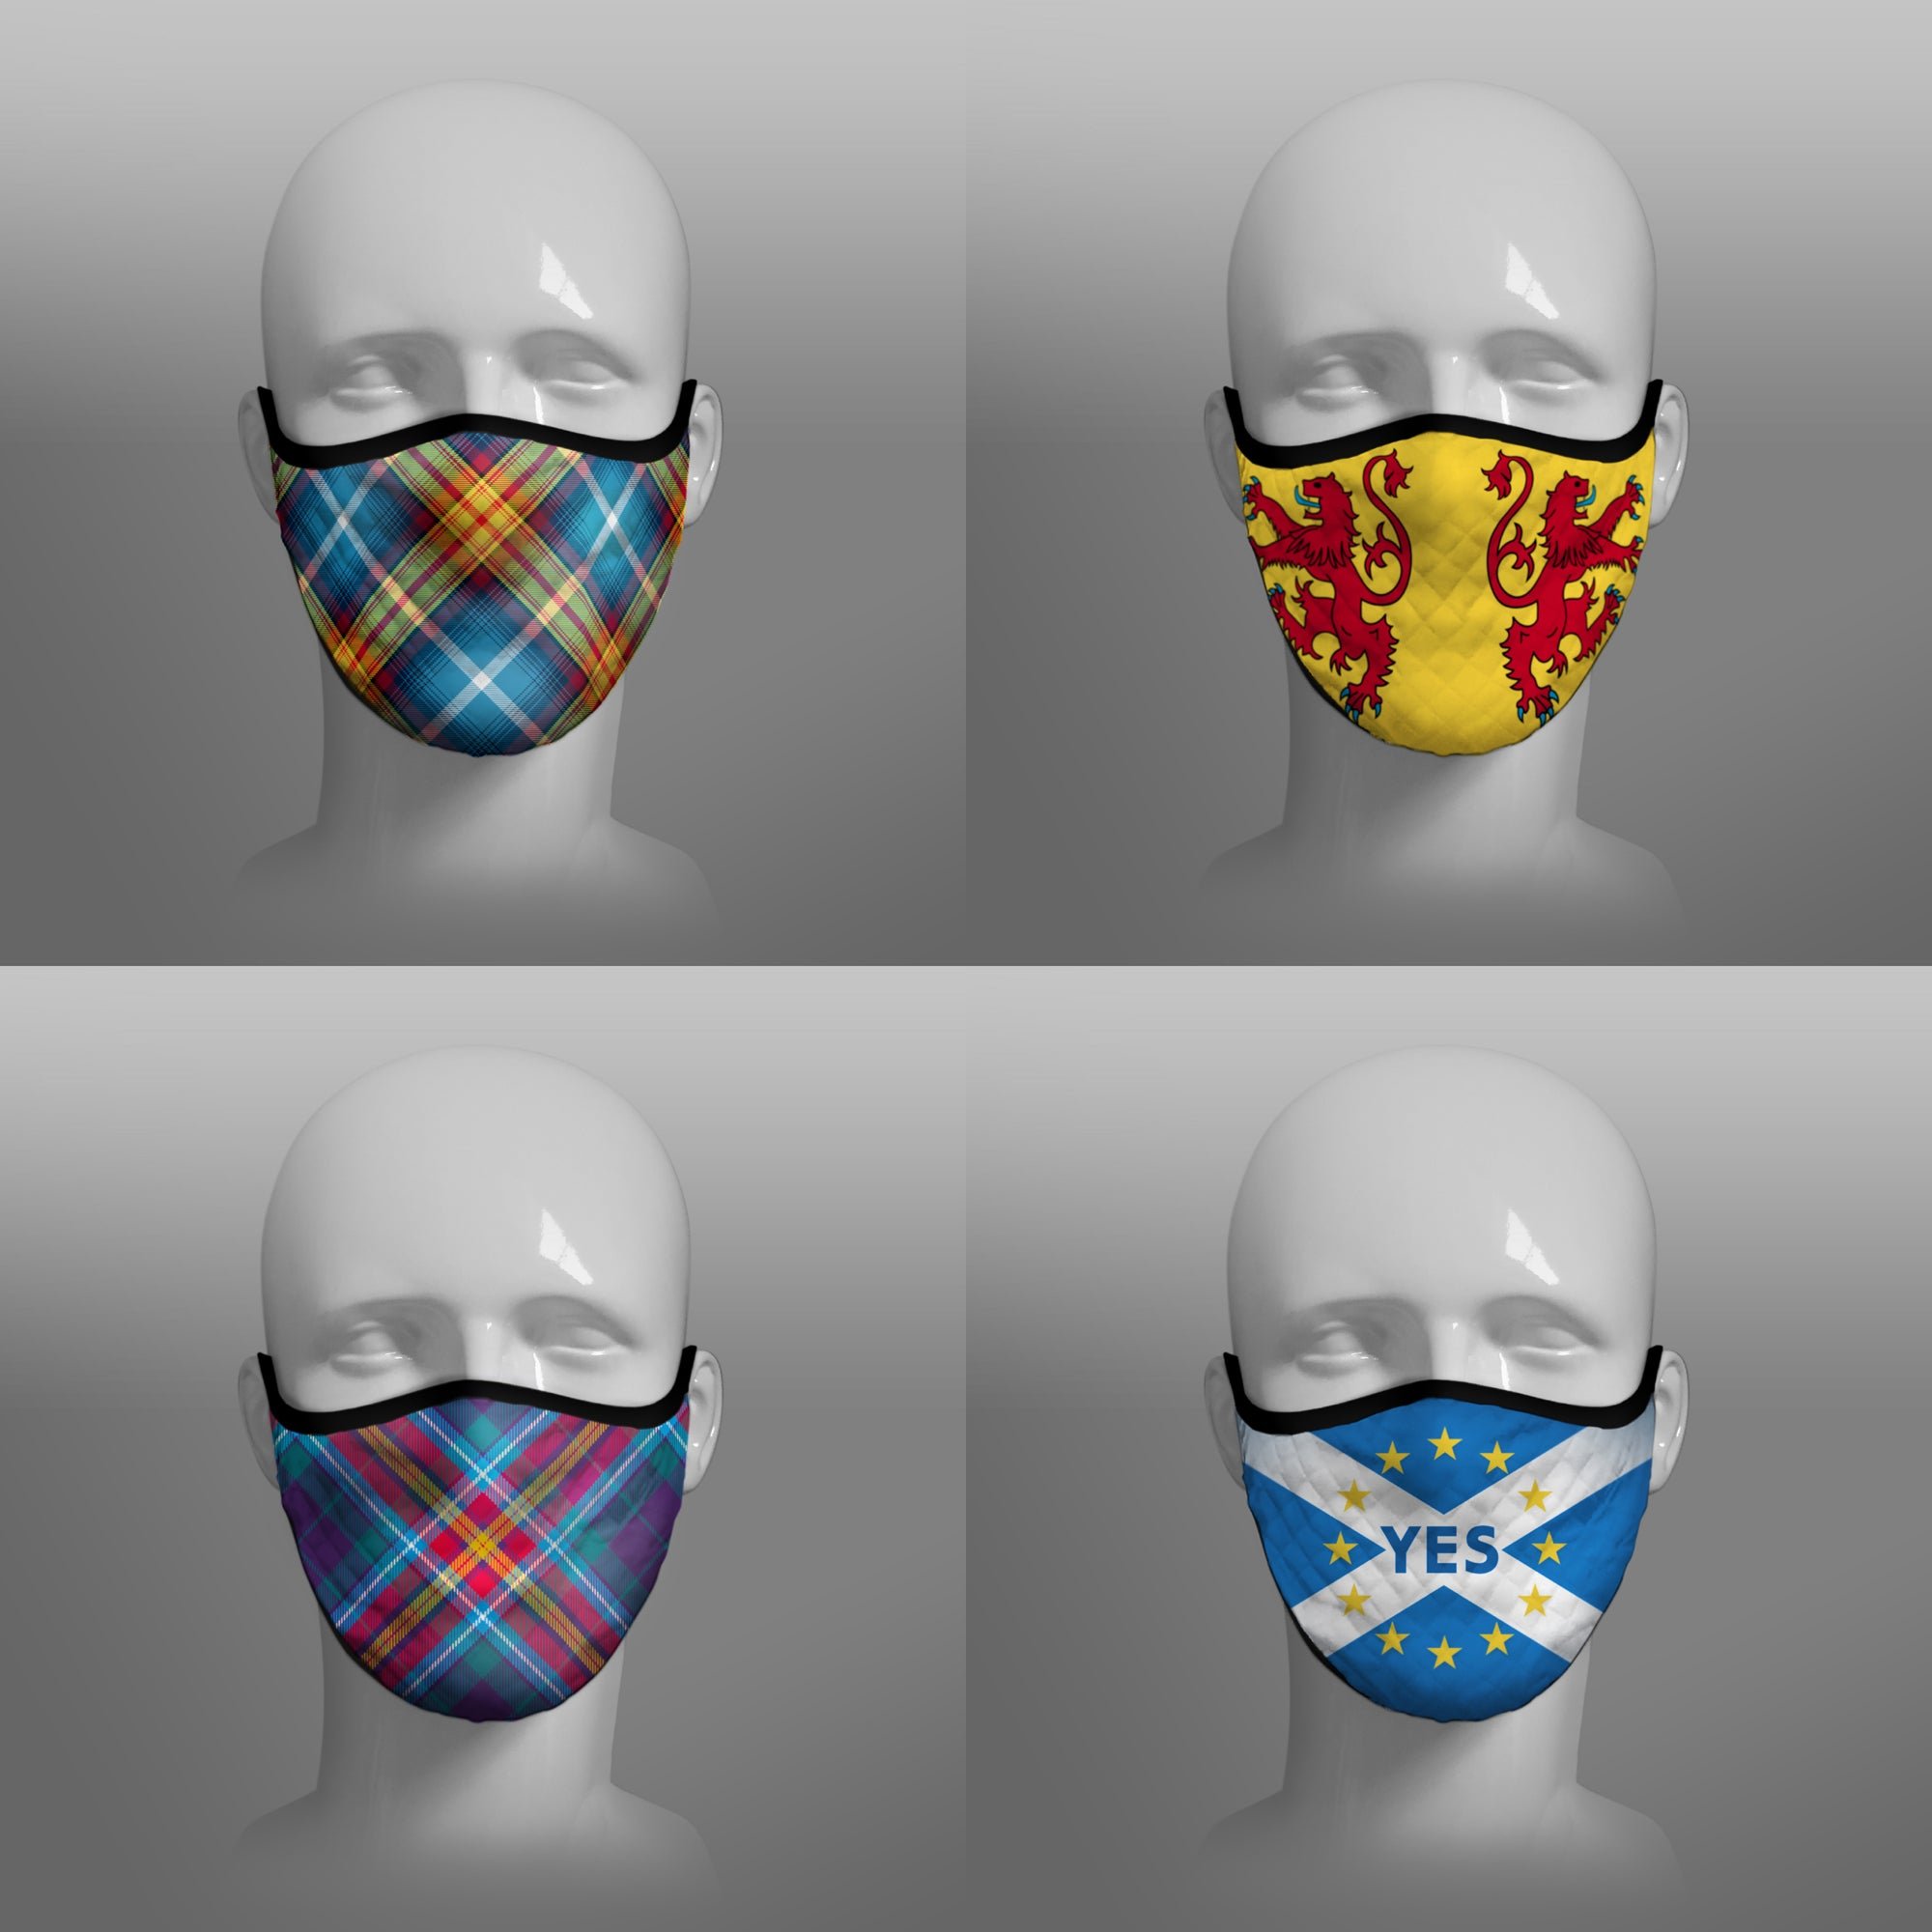 Tartan Face coverings - large face masks by Steven Patrick Sim the Tartan Artisan - including Declaration of Arbroath Scottish Independence - Lion Rampant - YES Alba Gu Brath - Scottish Saltire Pro EU